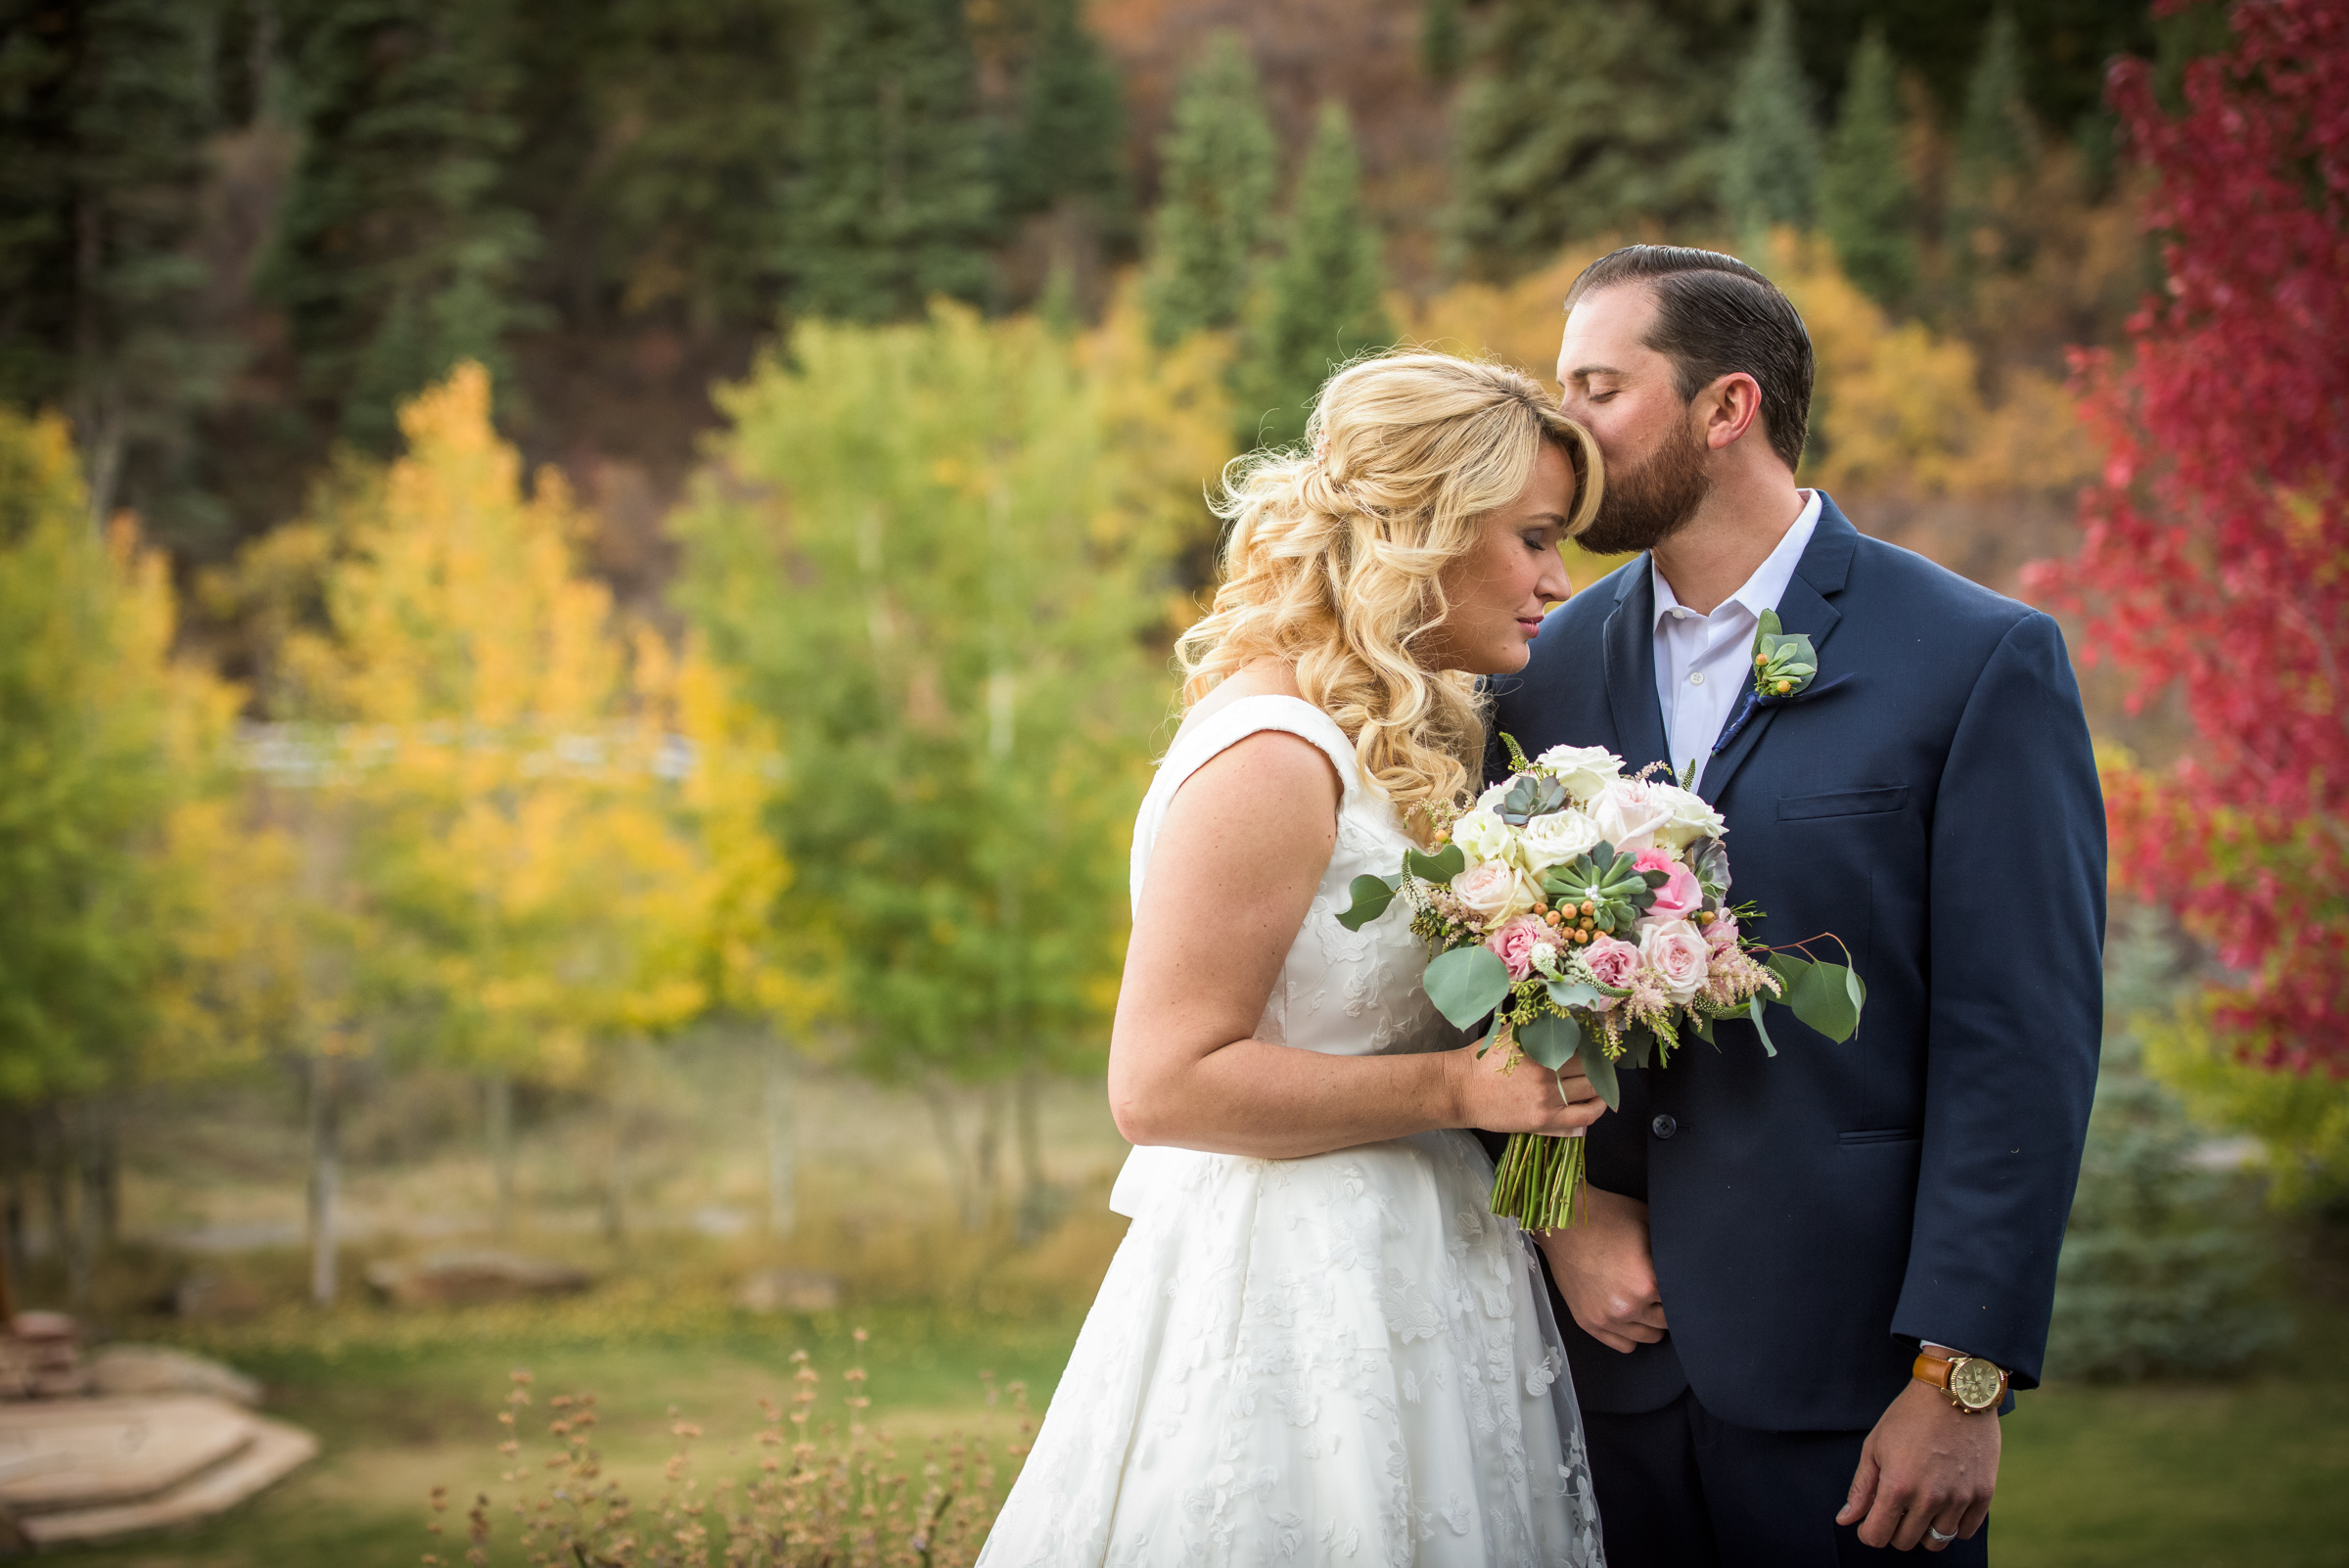 Sarah & Cory's Durango Colorado Wedding